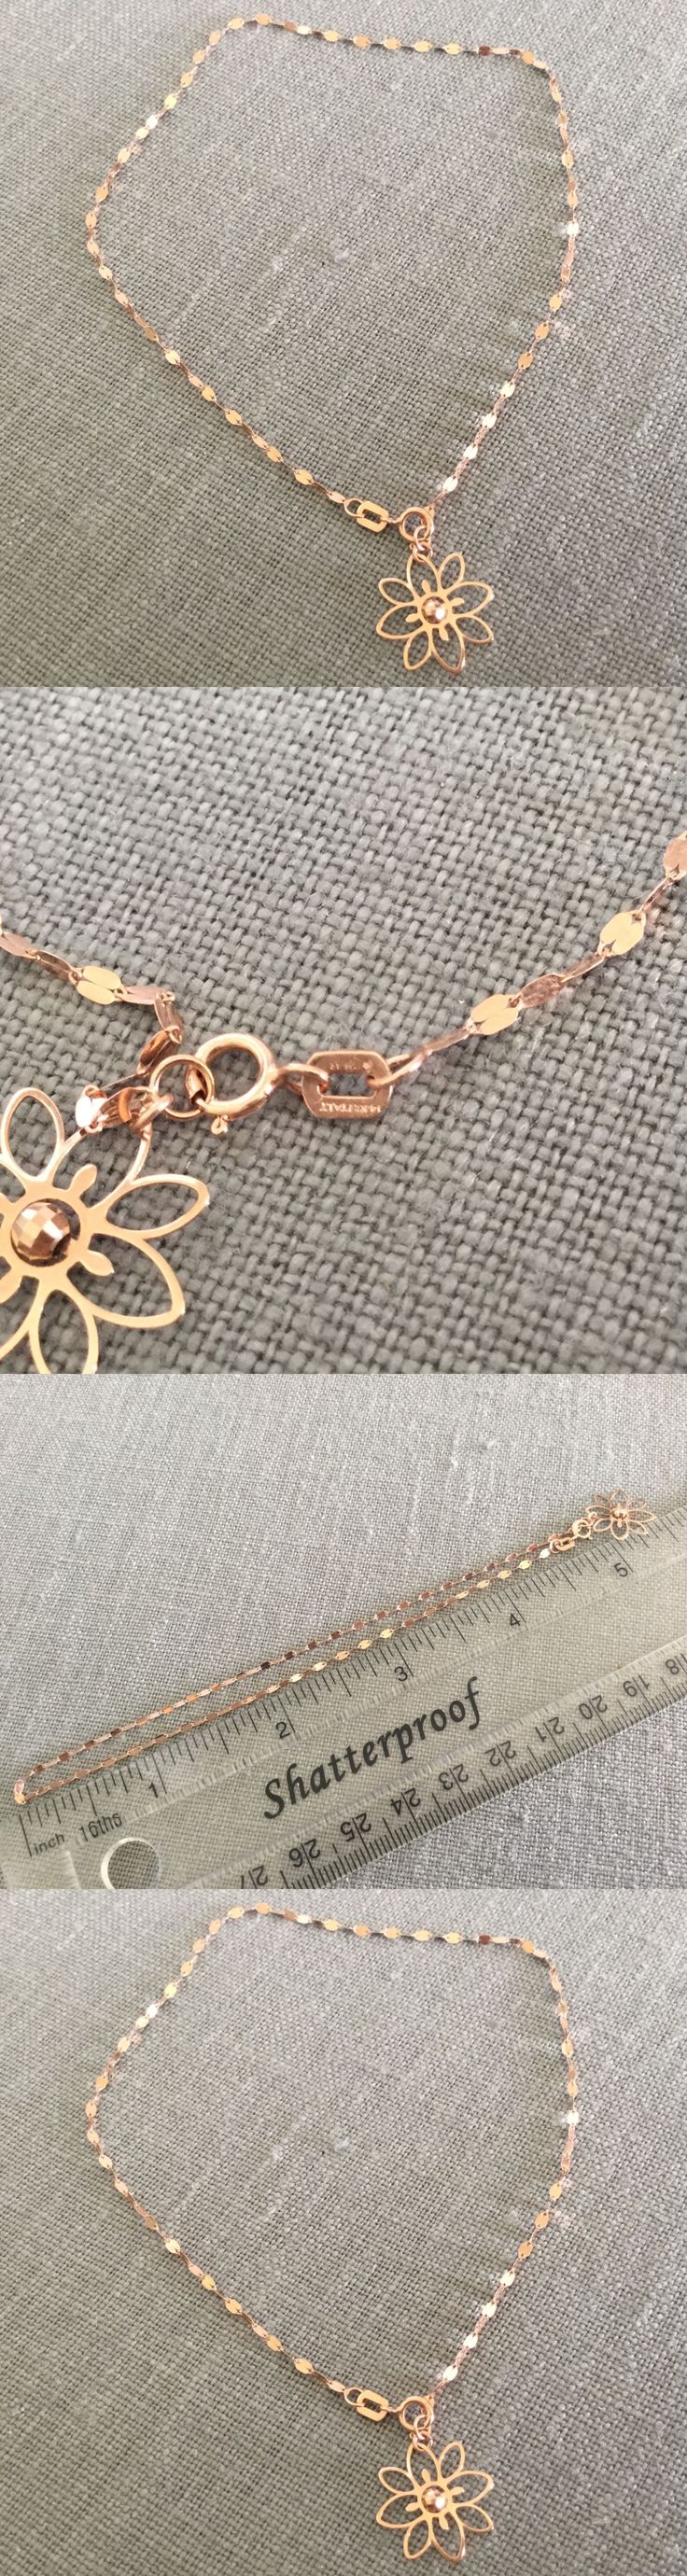 Fine Anklets 101437: 14Kt Anklet Rose Gold Chain Flower Charm Italy Ar?1758 Karat 585 BUY IT NOW ONLY: $99.0